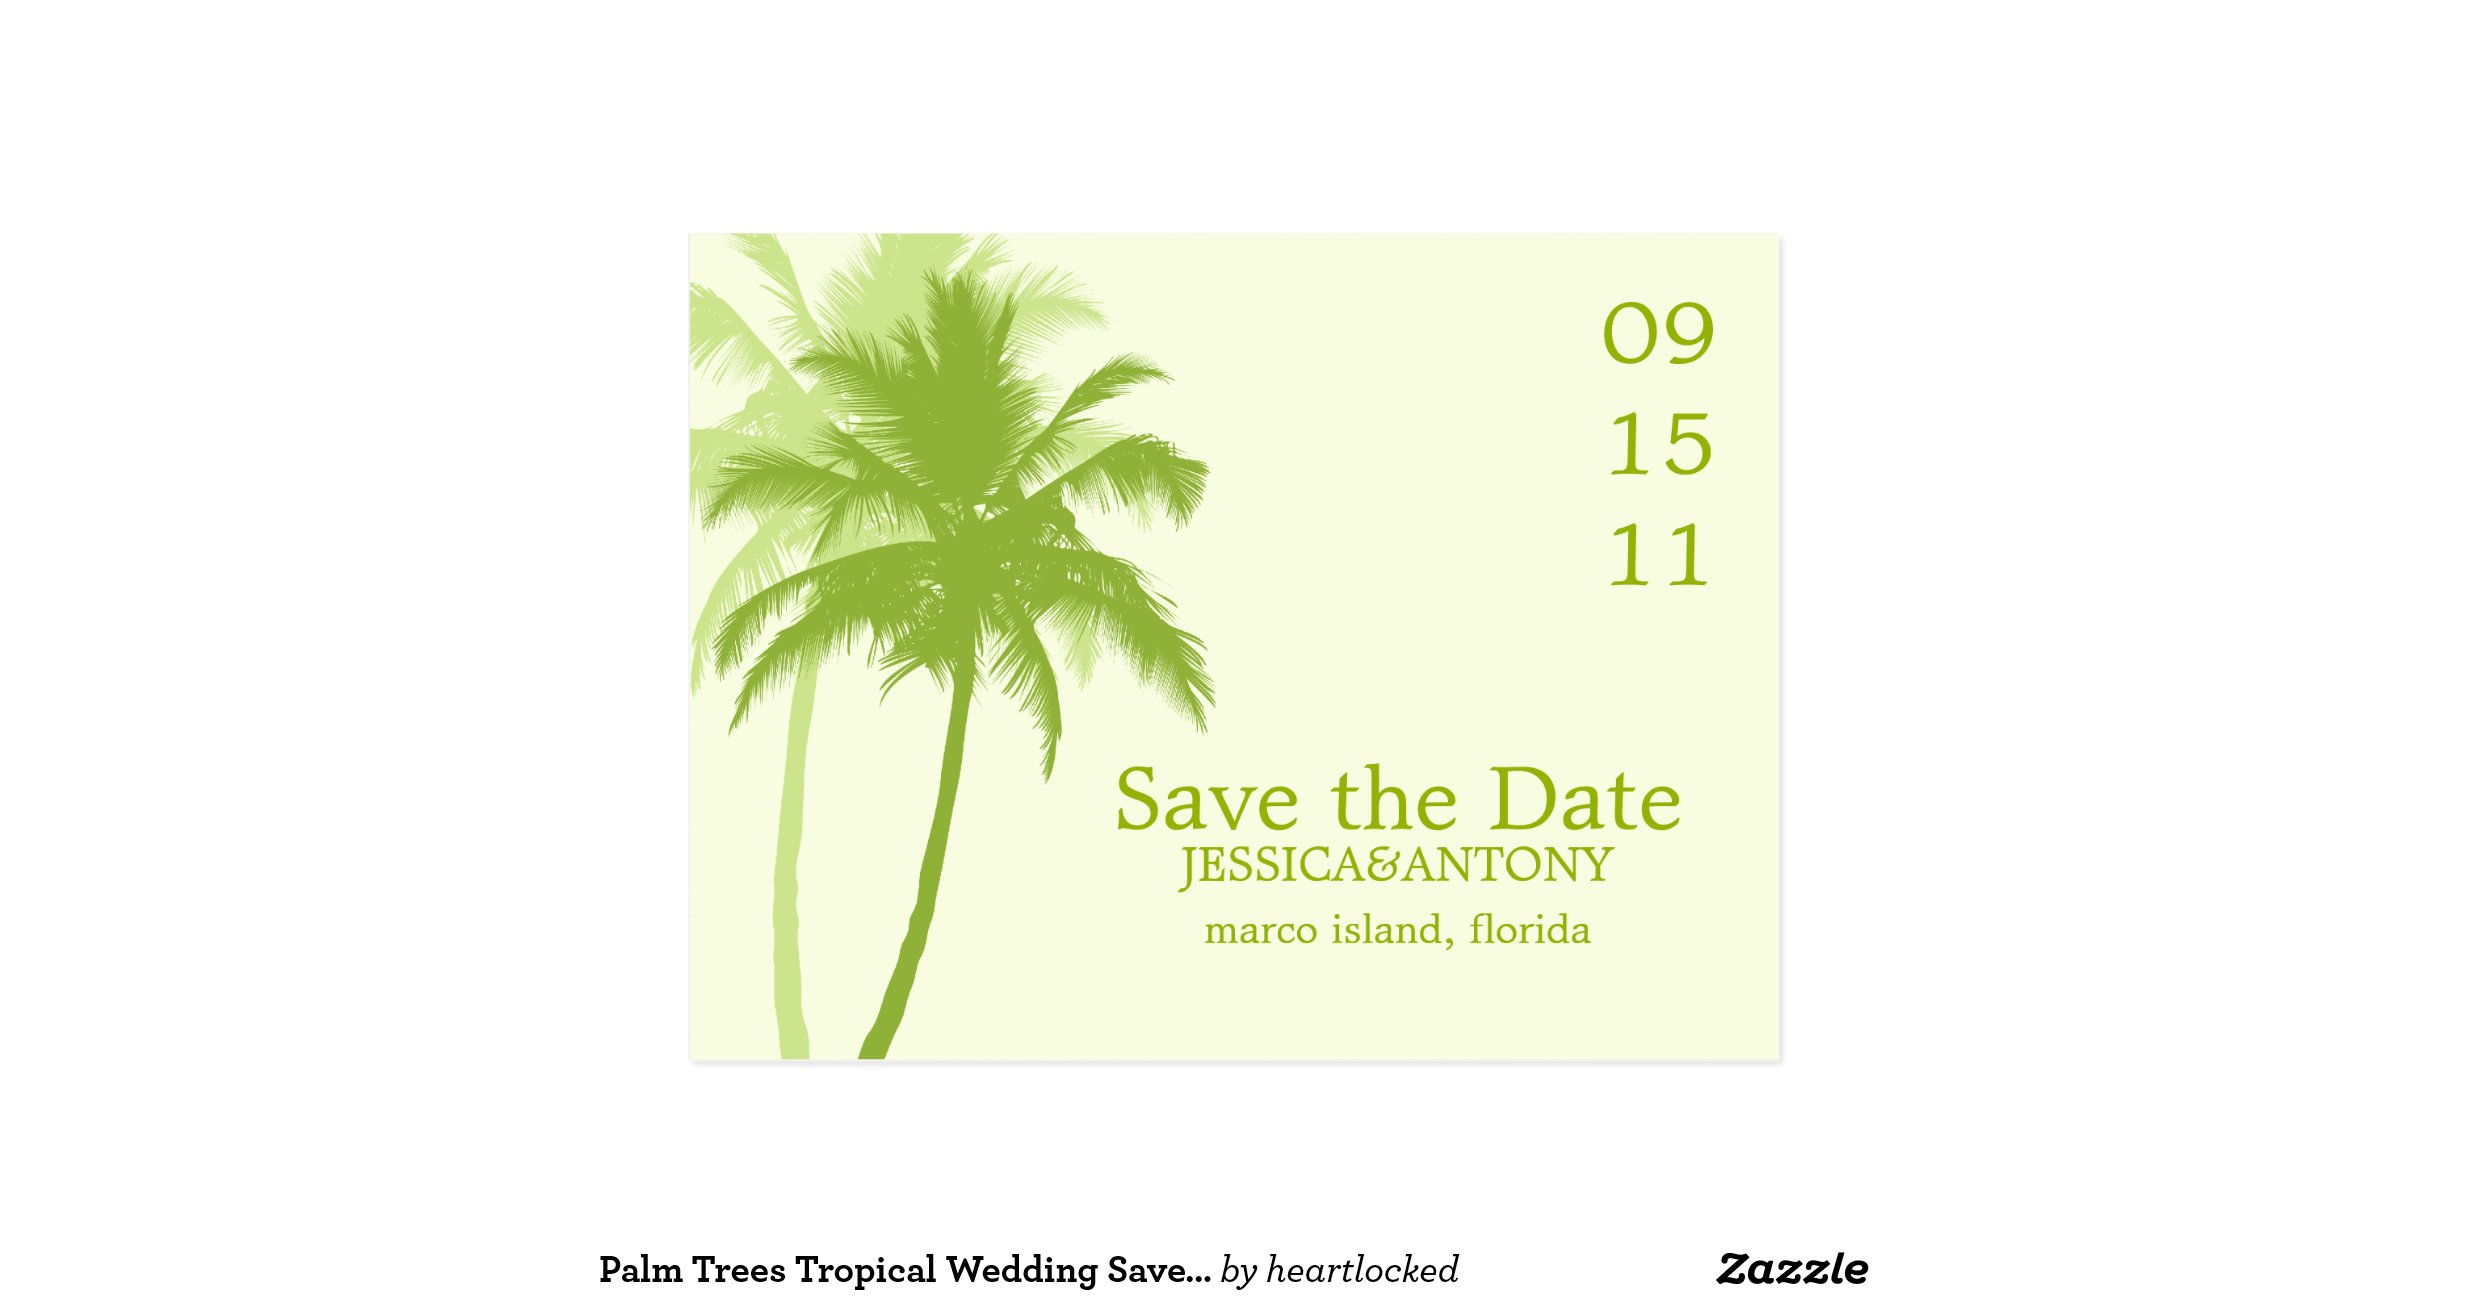 Palm trees tropical wedding save the date postcard r435359f98d884c0884a4feb4d152aaf2 vgbaq 8byvr - Tell tree dying order save ...